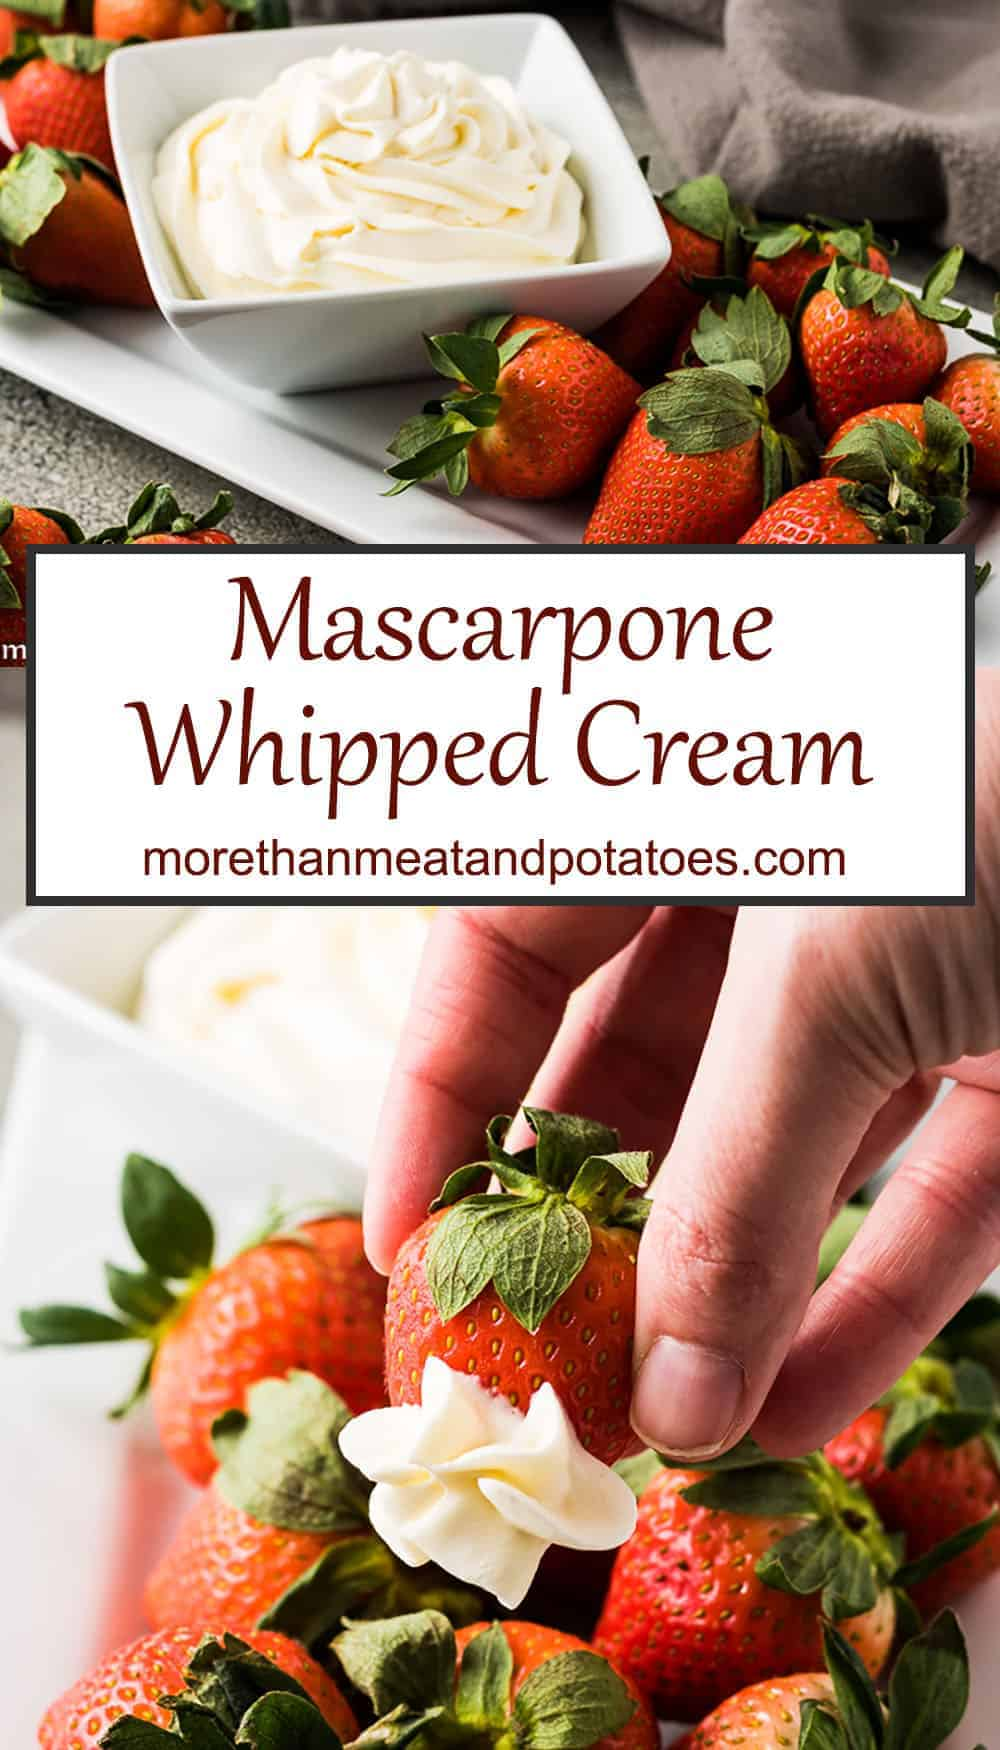 Two stacked pictures showing mascarpone whipped cream with strawberries.